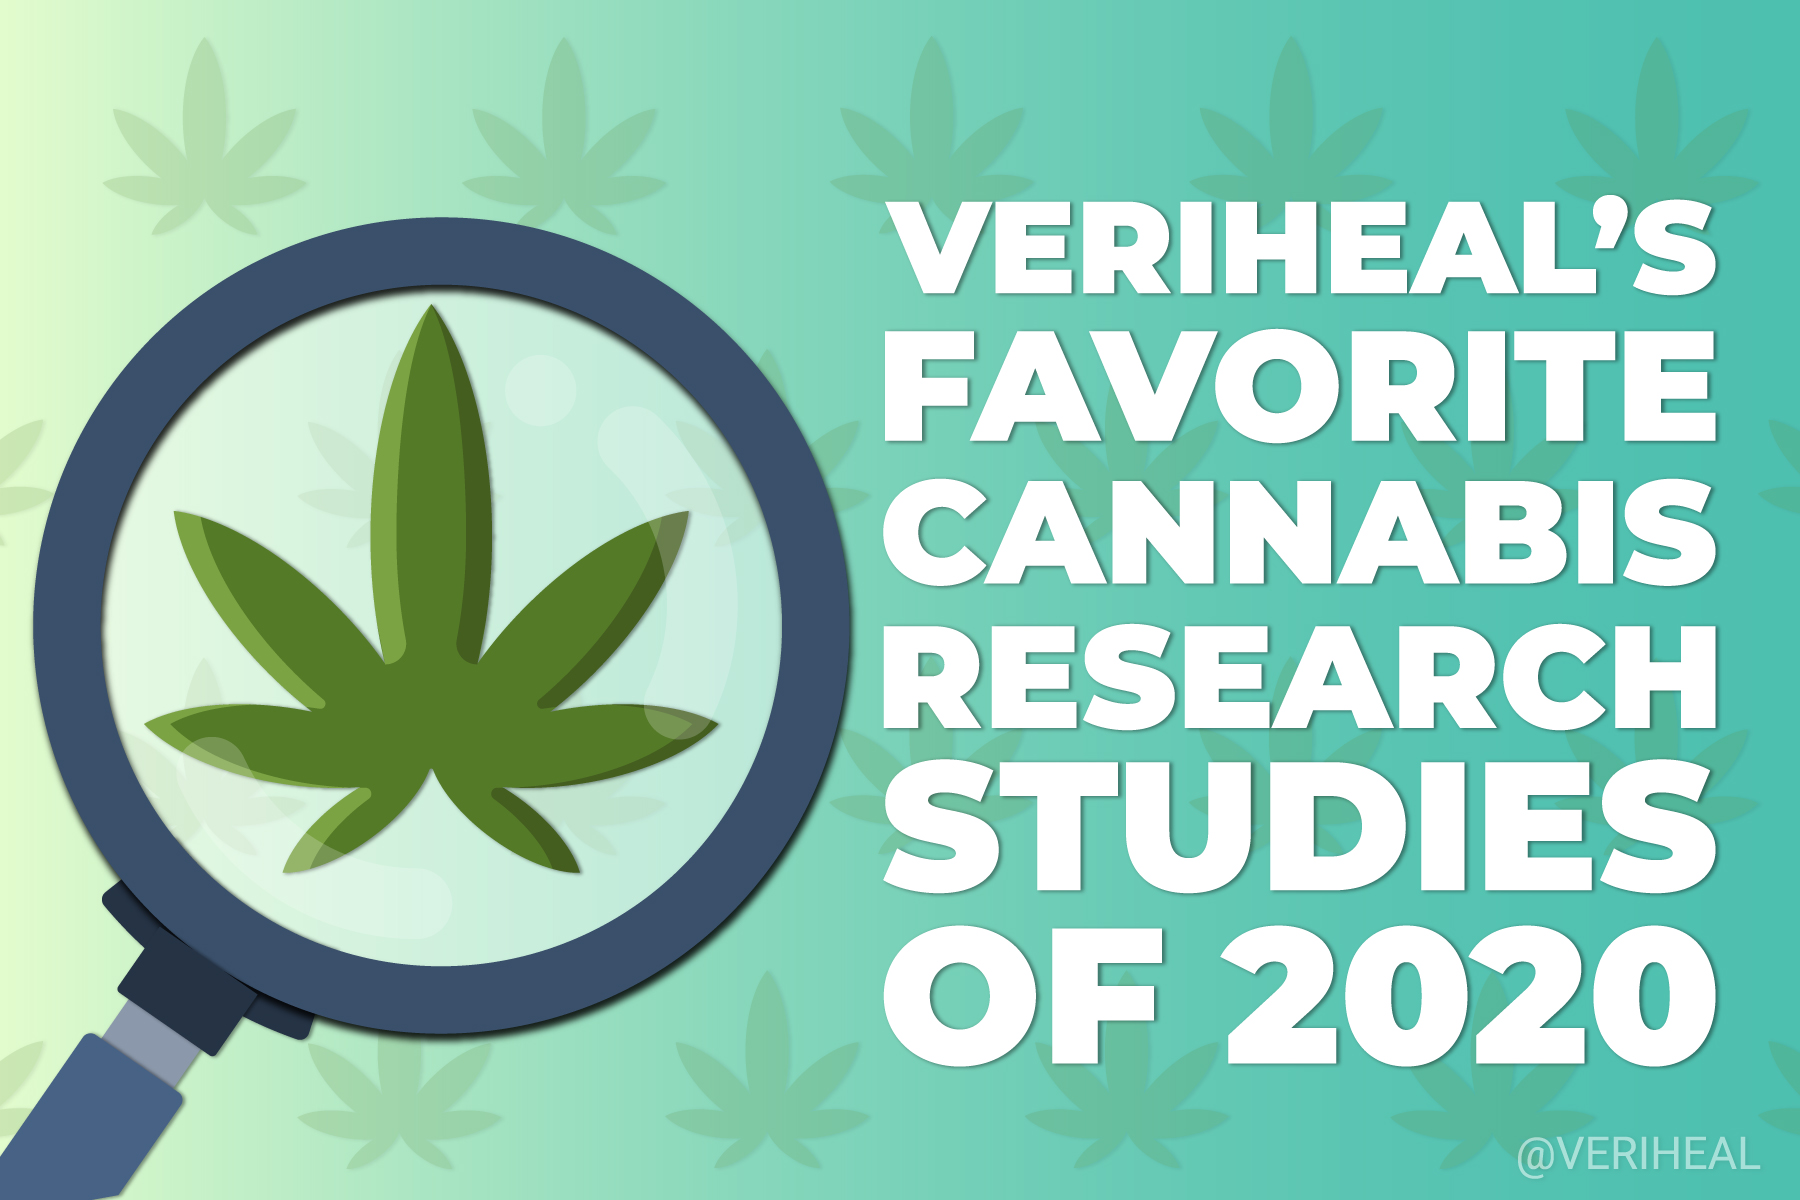 Veriheal's Favorite Cannabis Research Studies of 2020